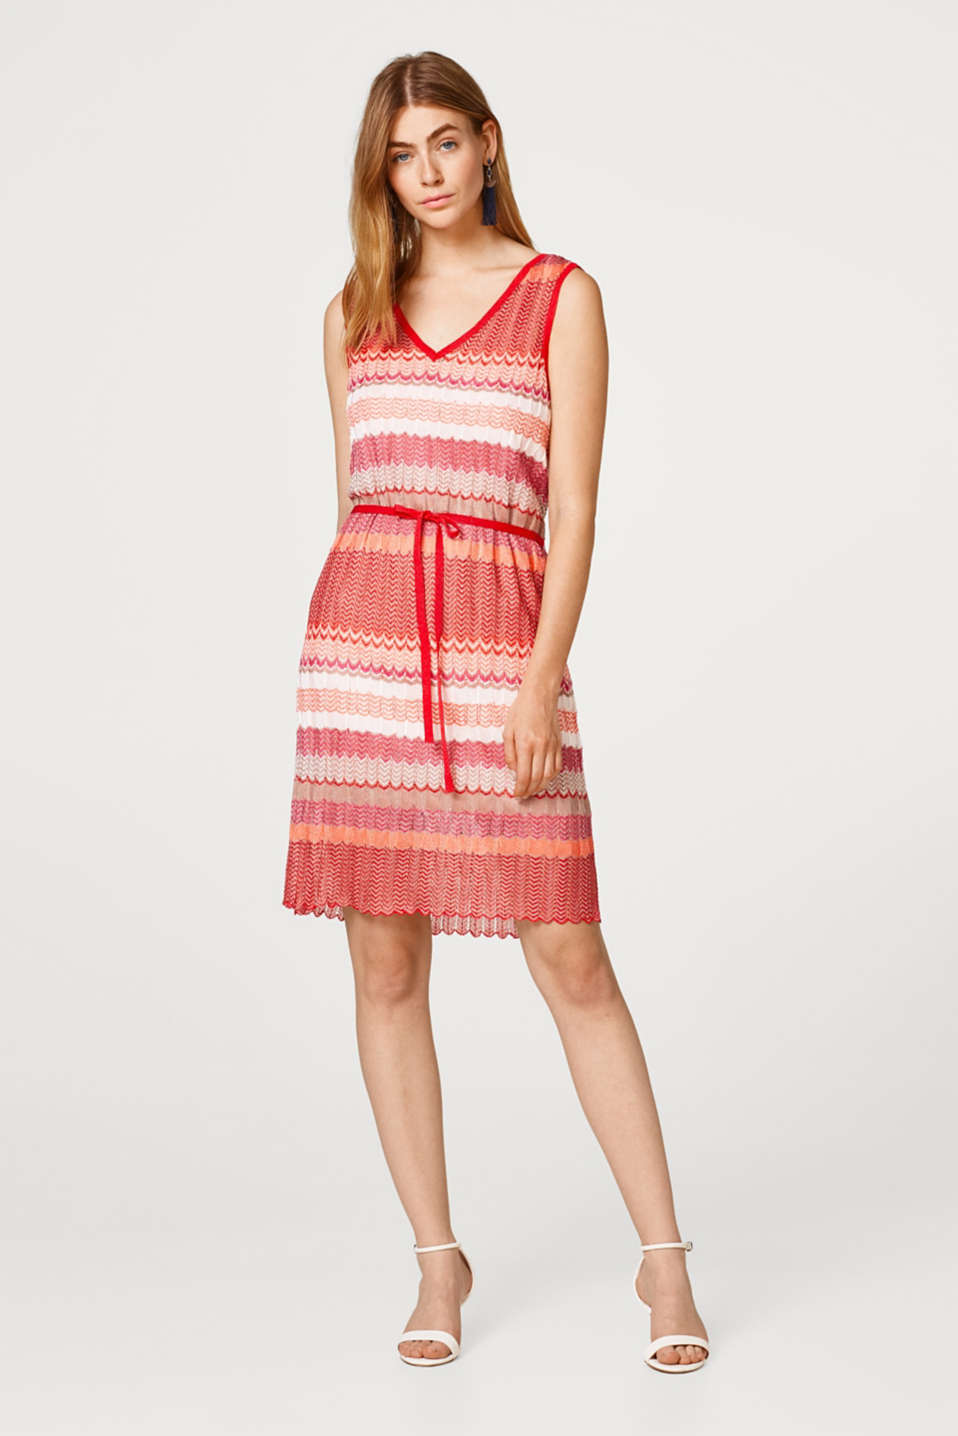 Esprit - Dress composed of openwork knit fabric with a zigzag pattern